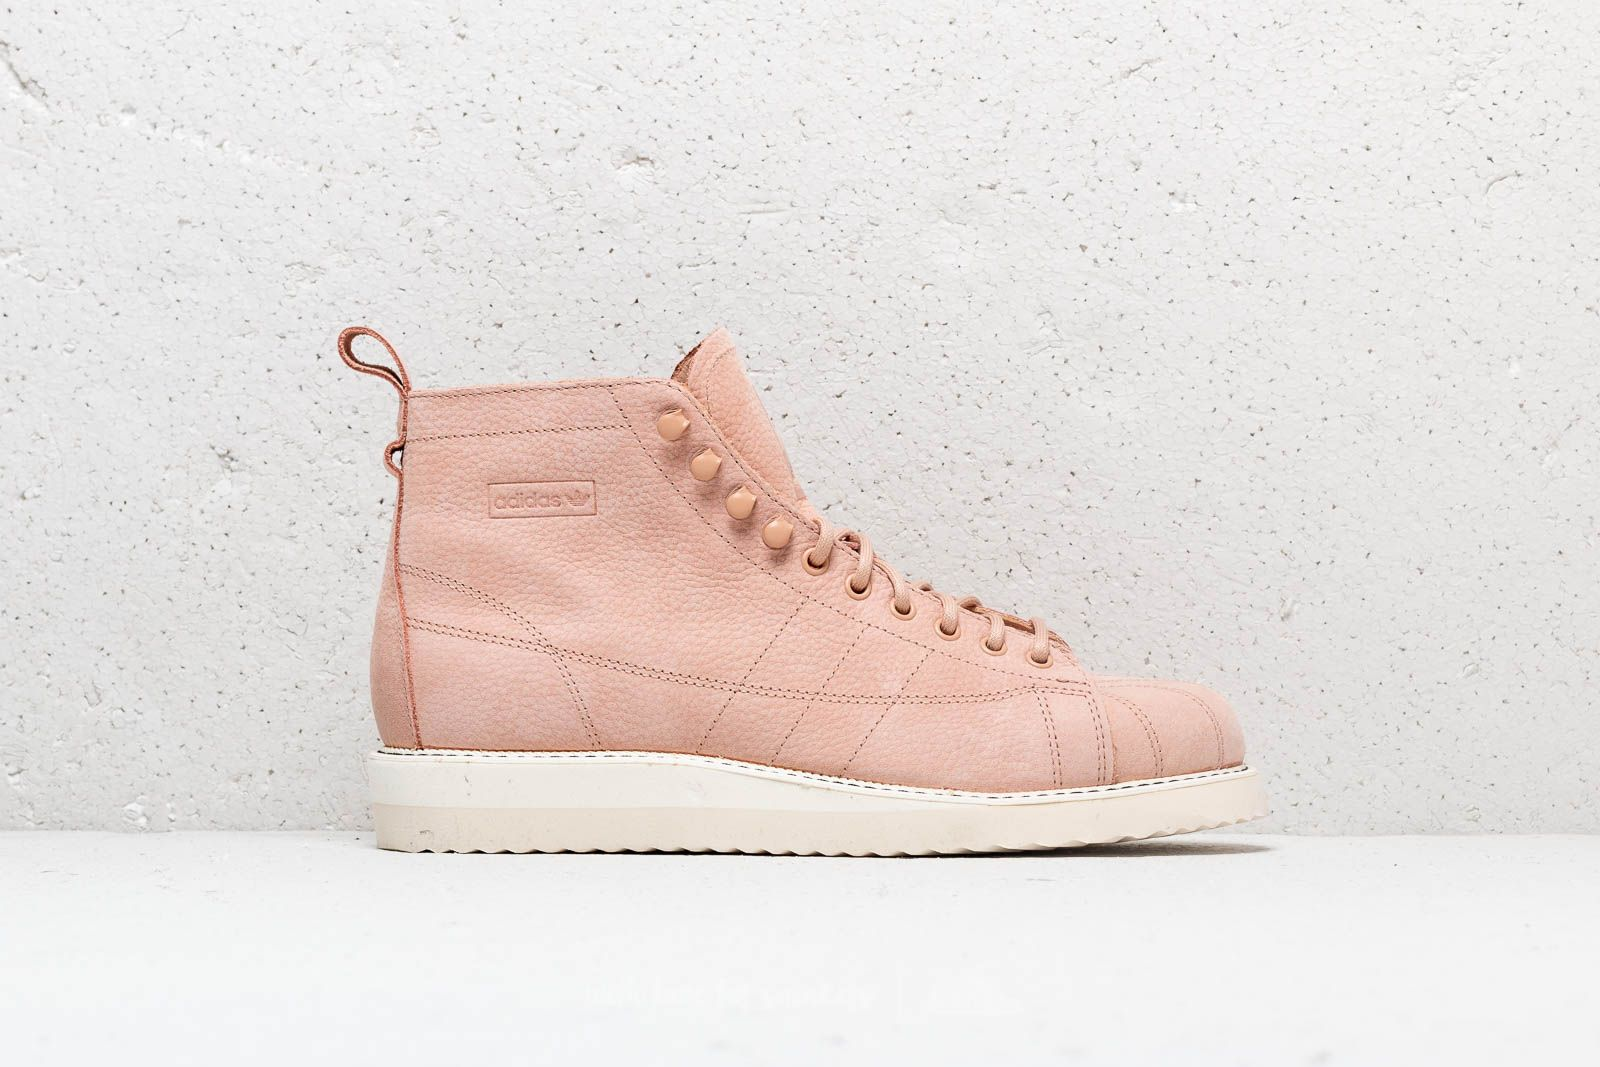 promo code 1159f 8c5ef adidas Superstar Boot W Ash Pearl Ash Pearl Off White at a great price